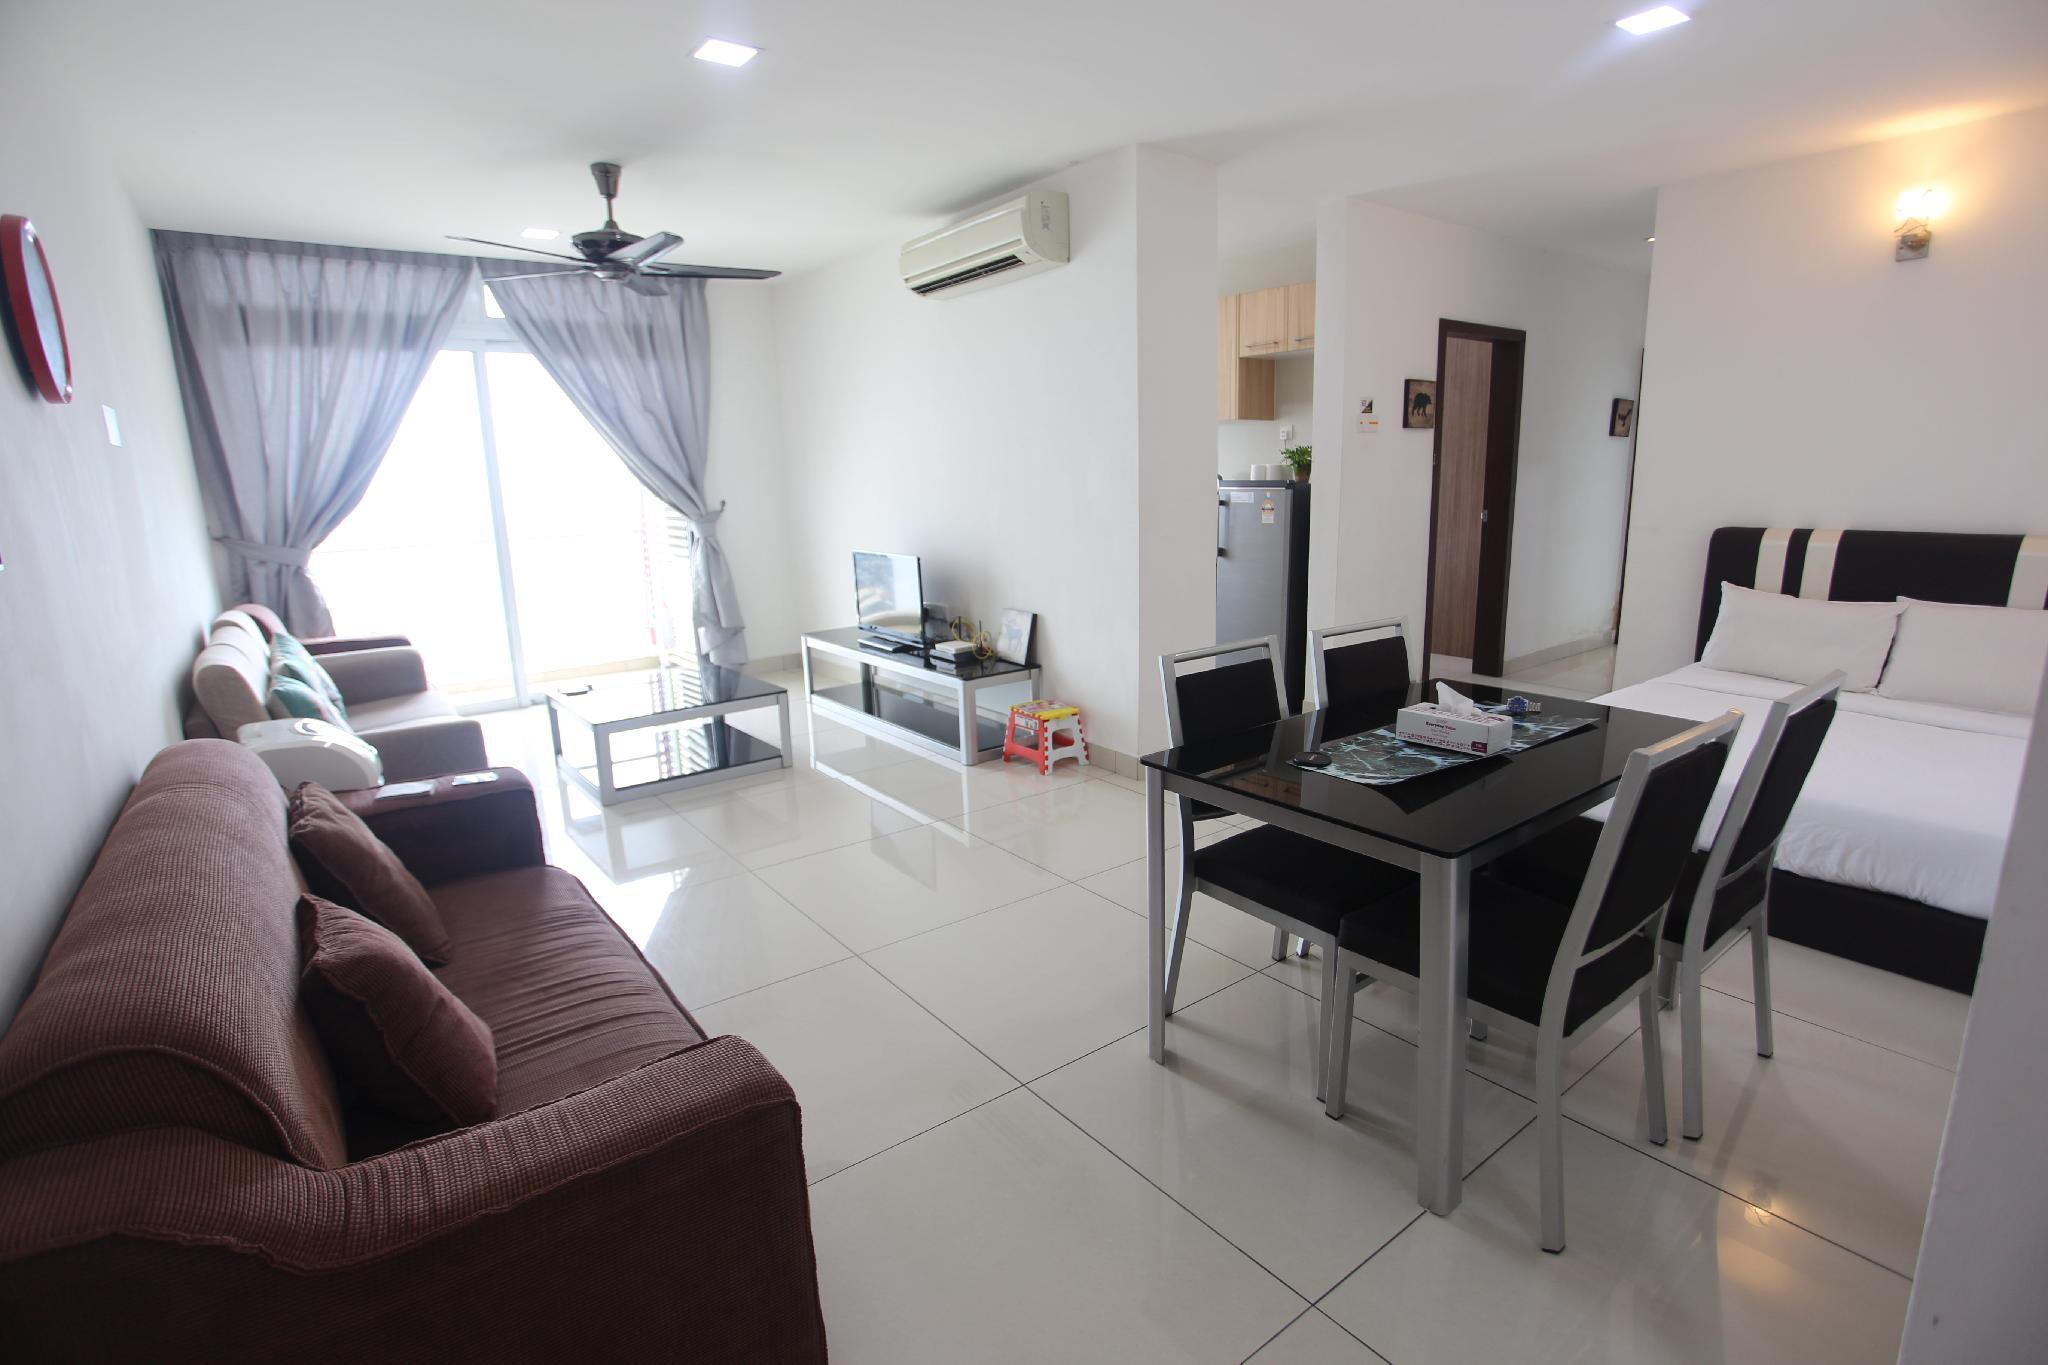 Style 2 Rooms@5min To S'pore